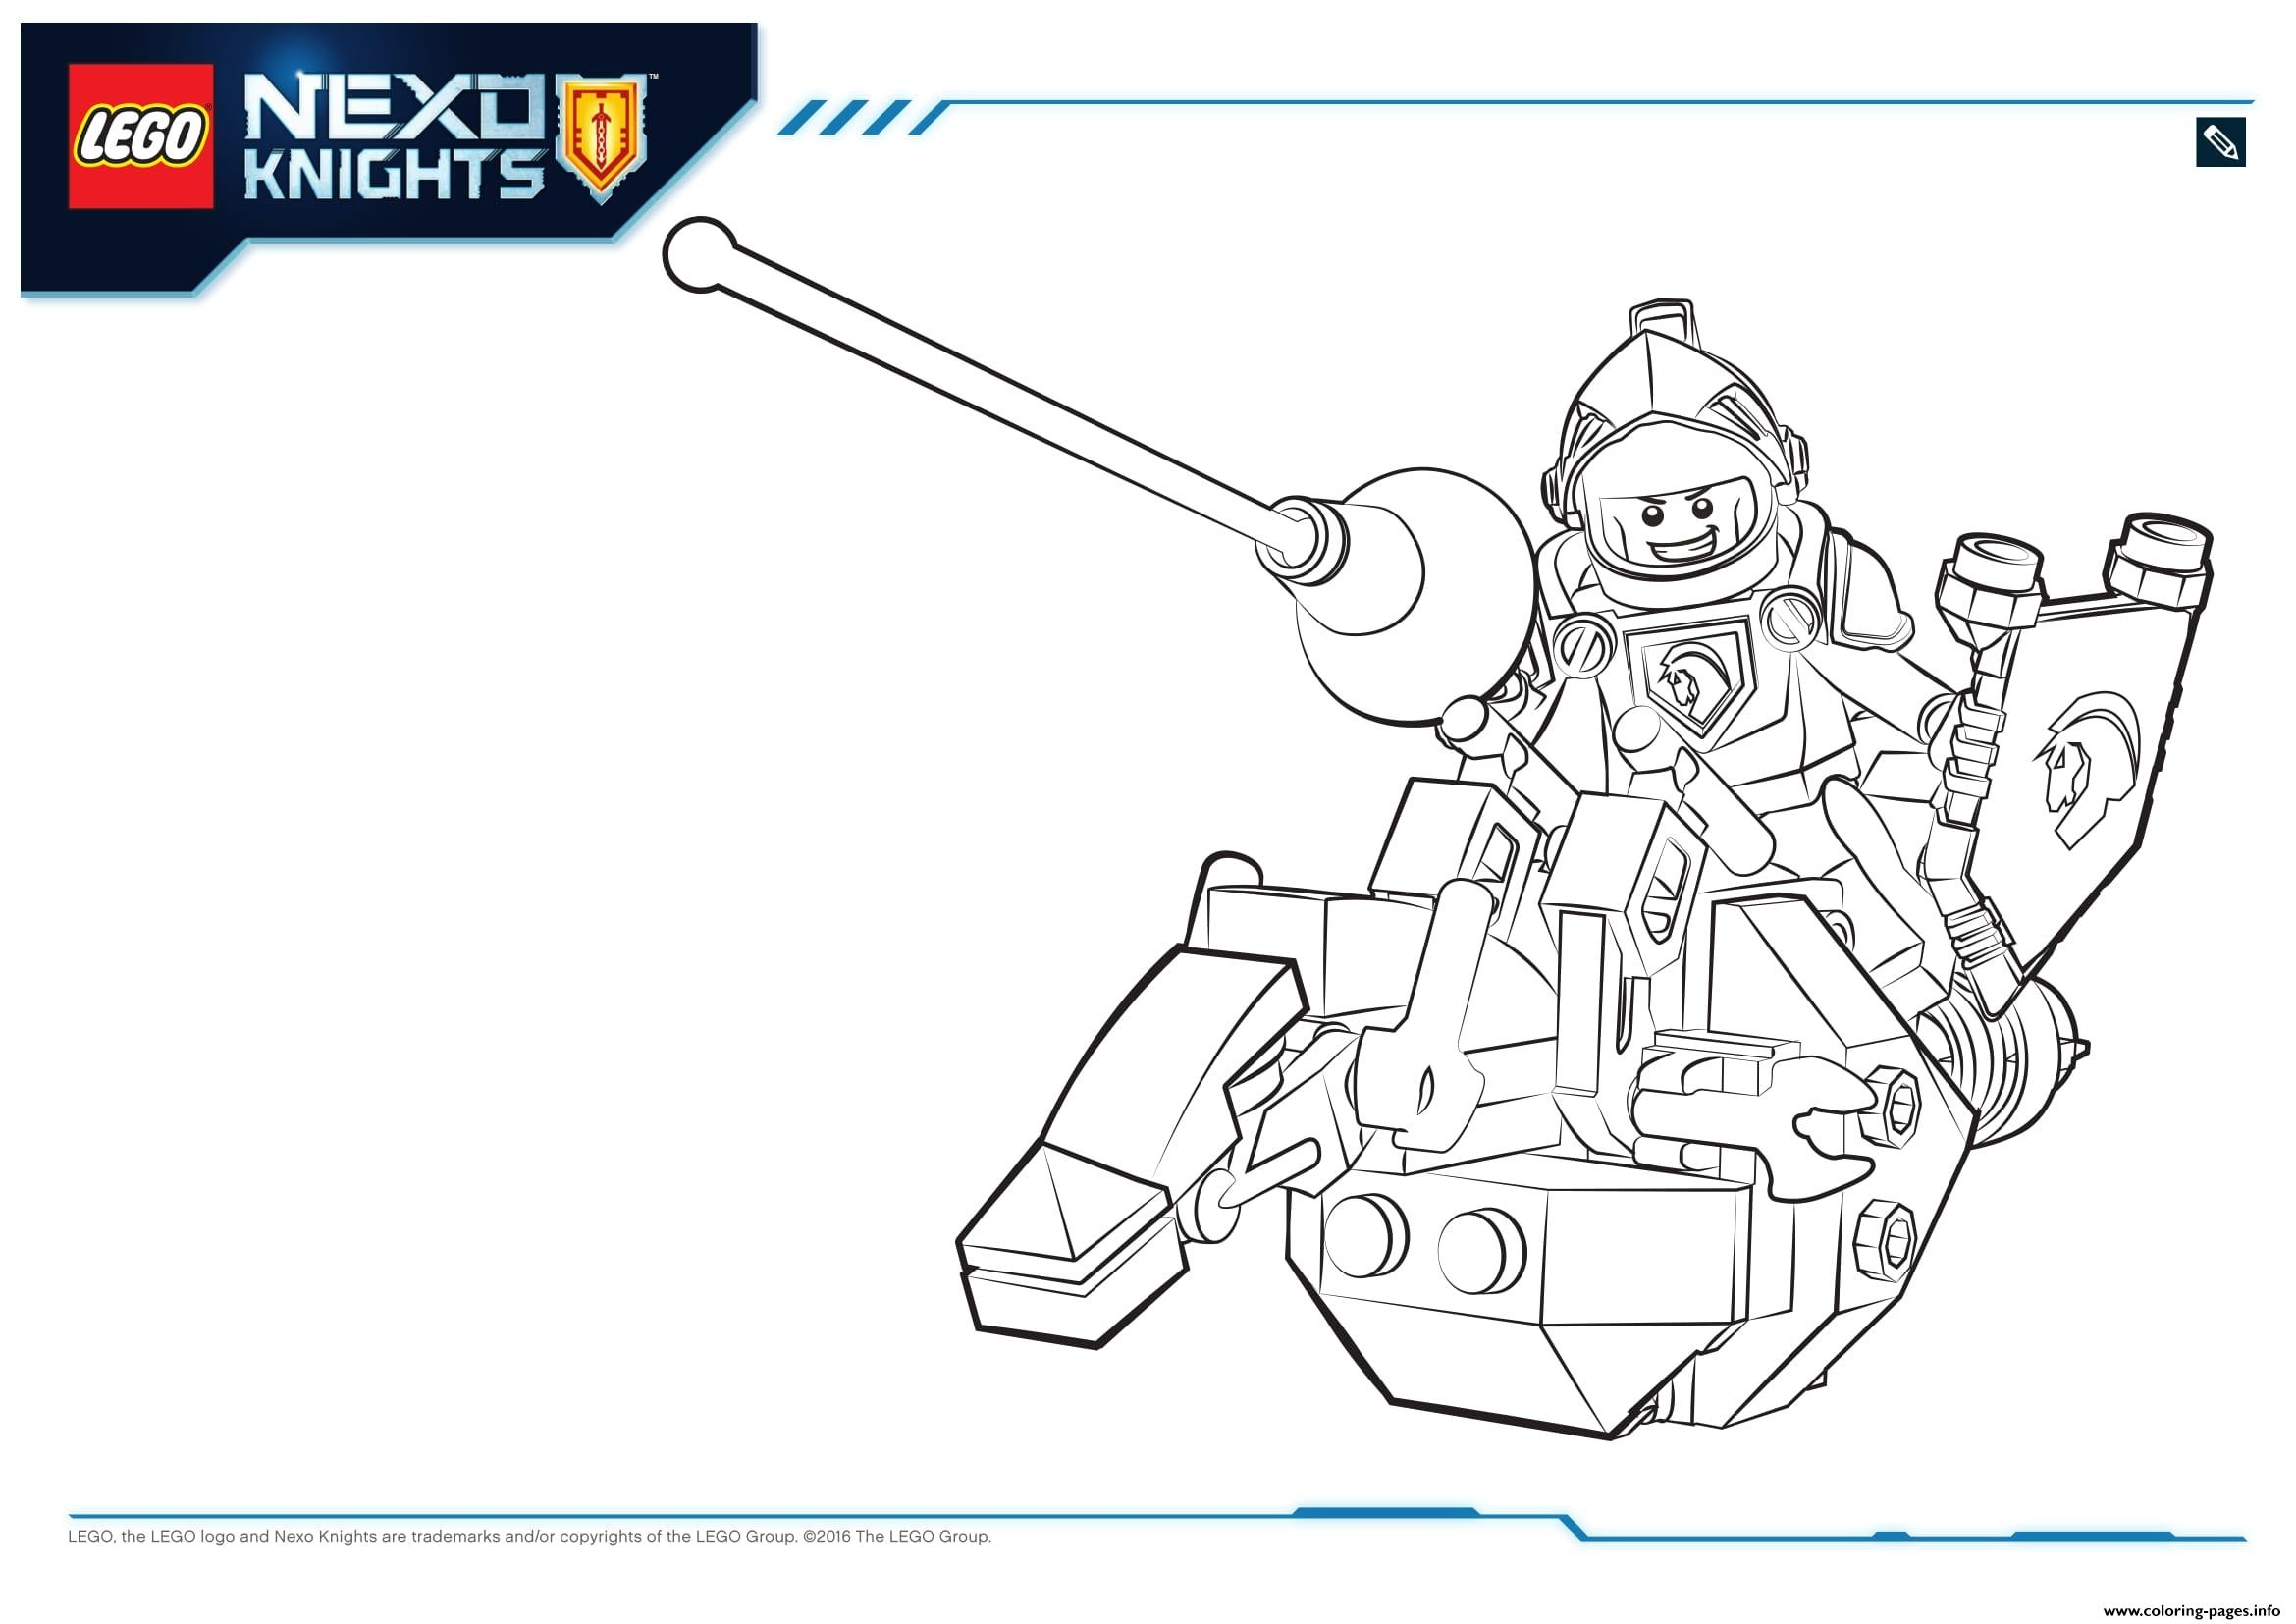 nexo knights coloring pages - lego nexo knights lance 1 printable coloring pages book